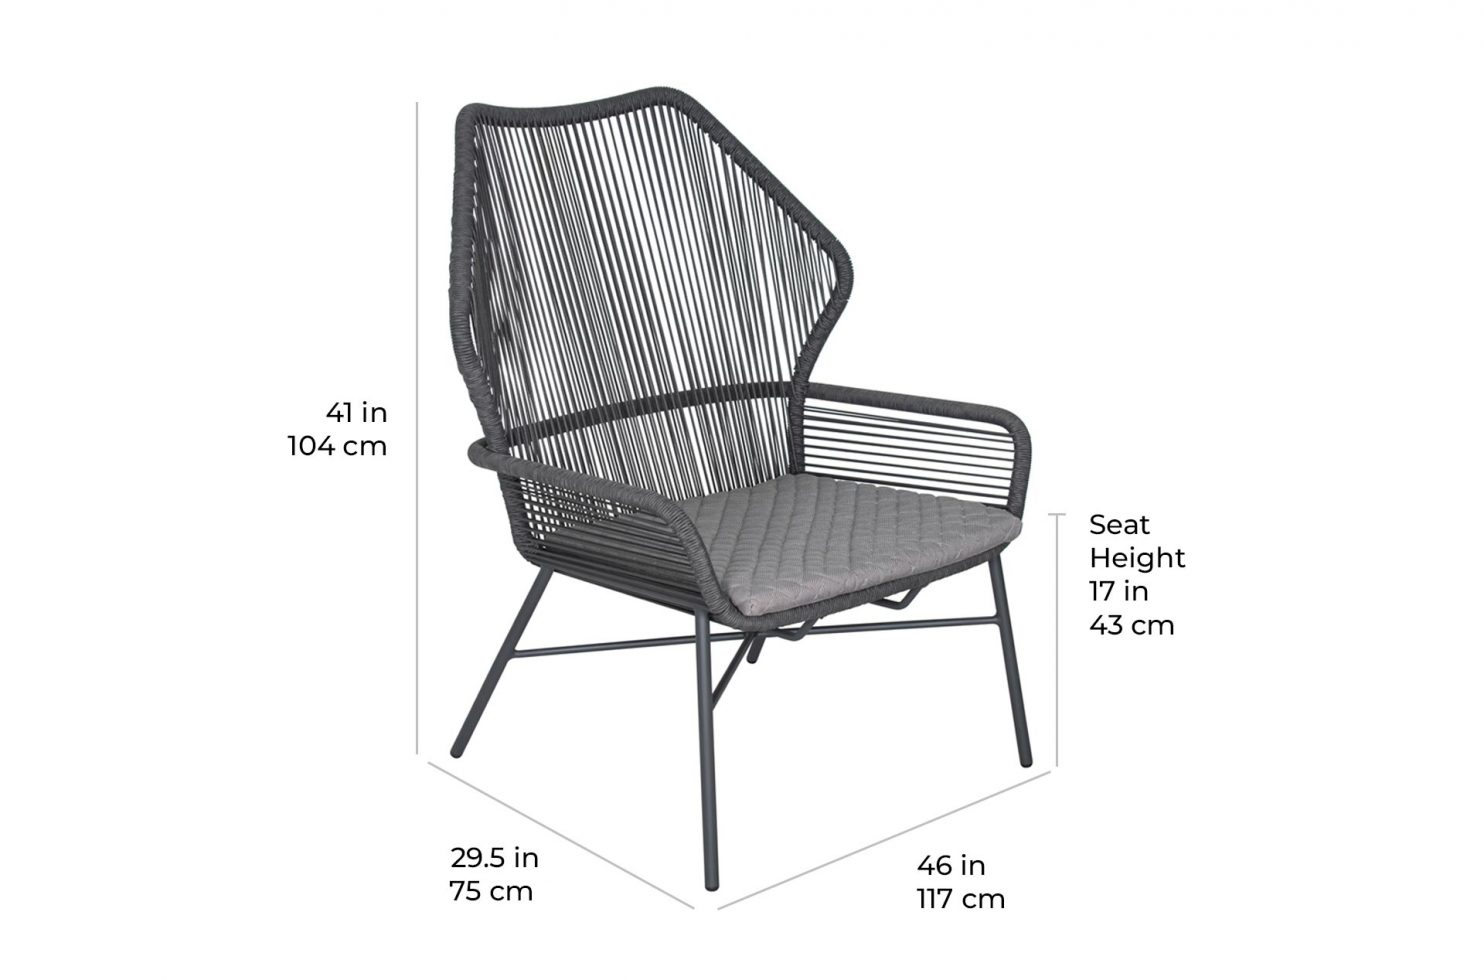 arch danish lounge 620FT075P2 scale dims